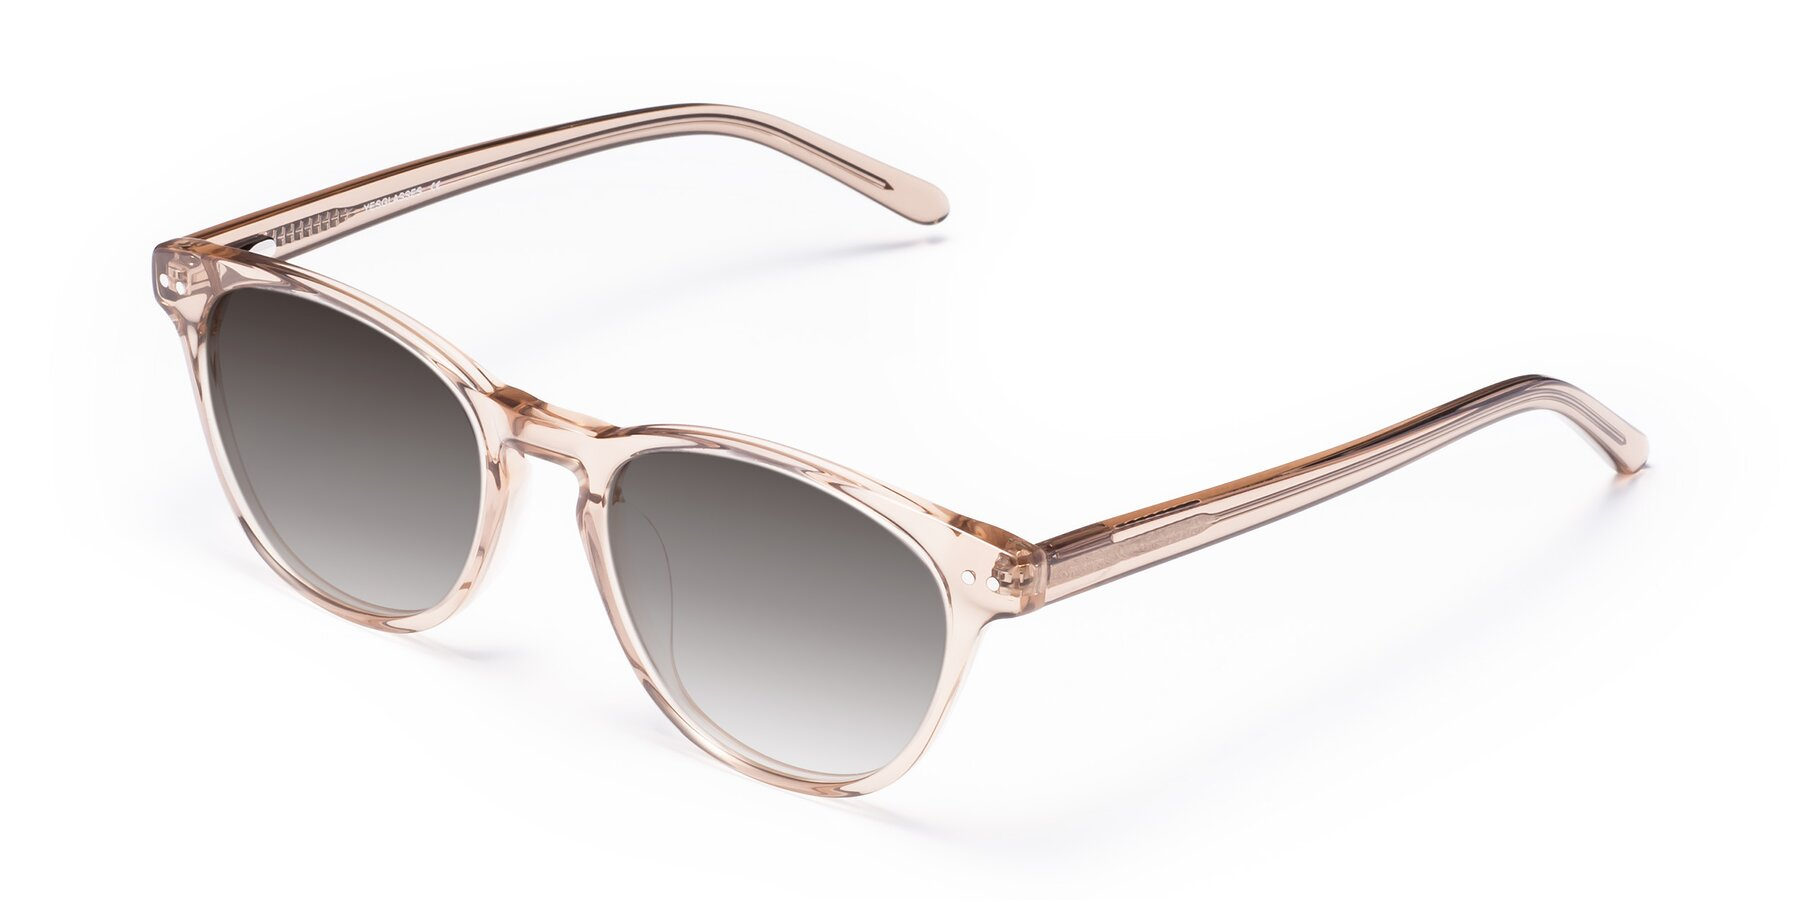 Angle of Blaze in light Brown with Gray Gradient Lenses